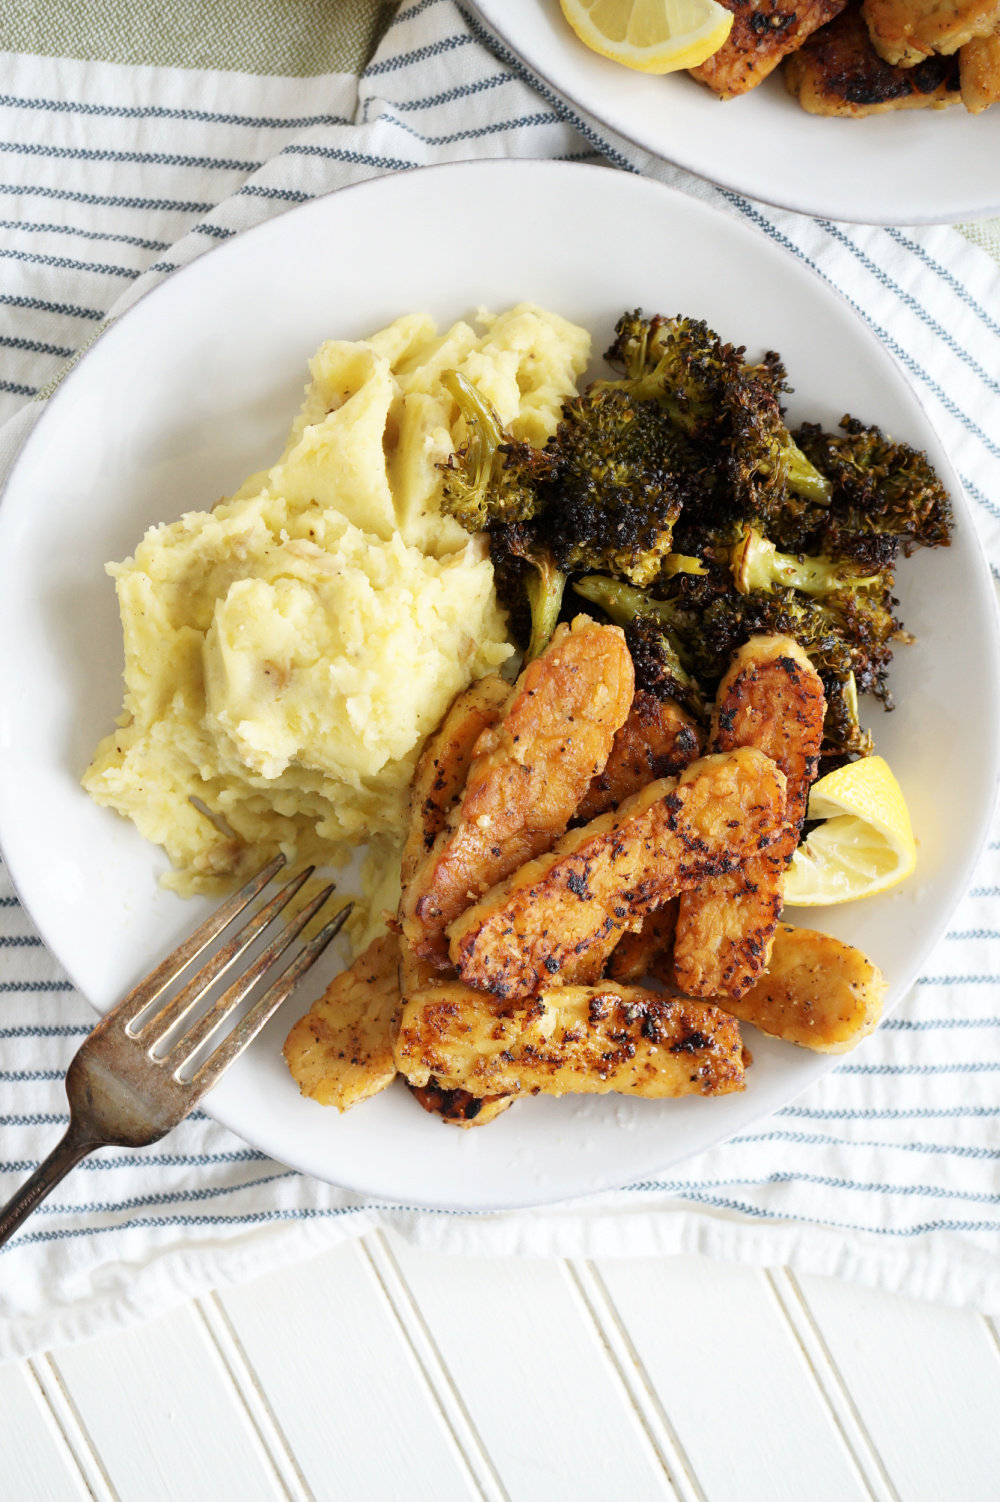 plate of lemon pepper tempeh with side dishes